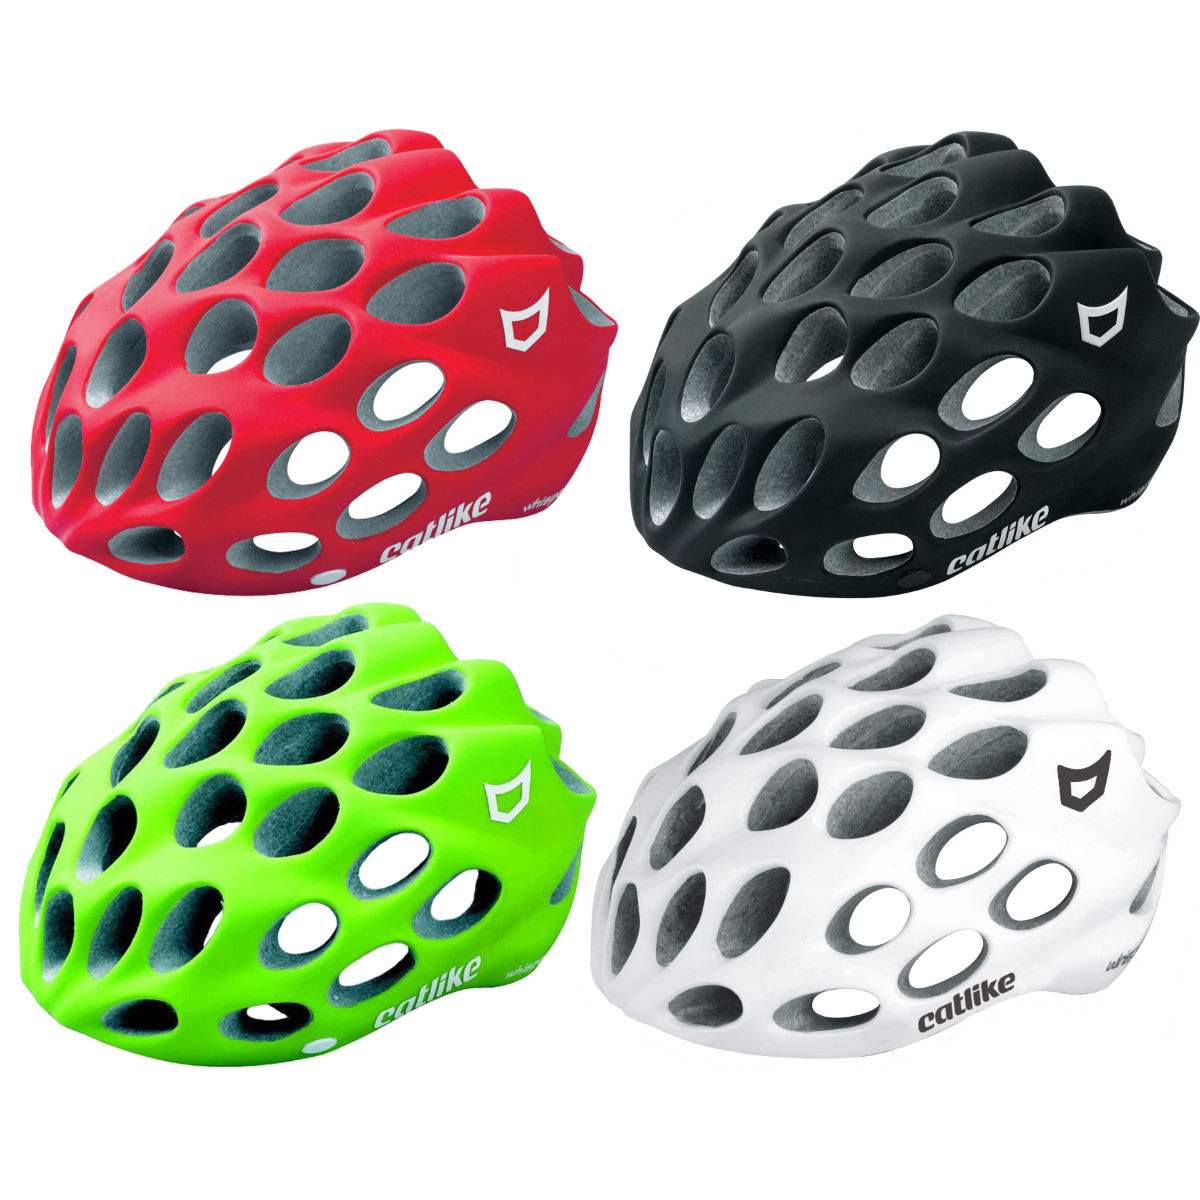 Catlike Whisper Plus Road Helmet 2013